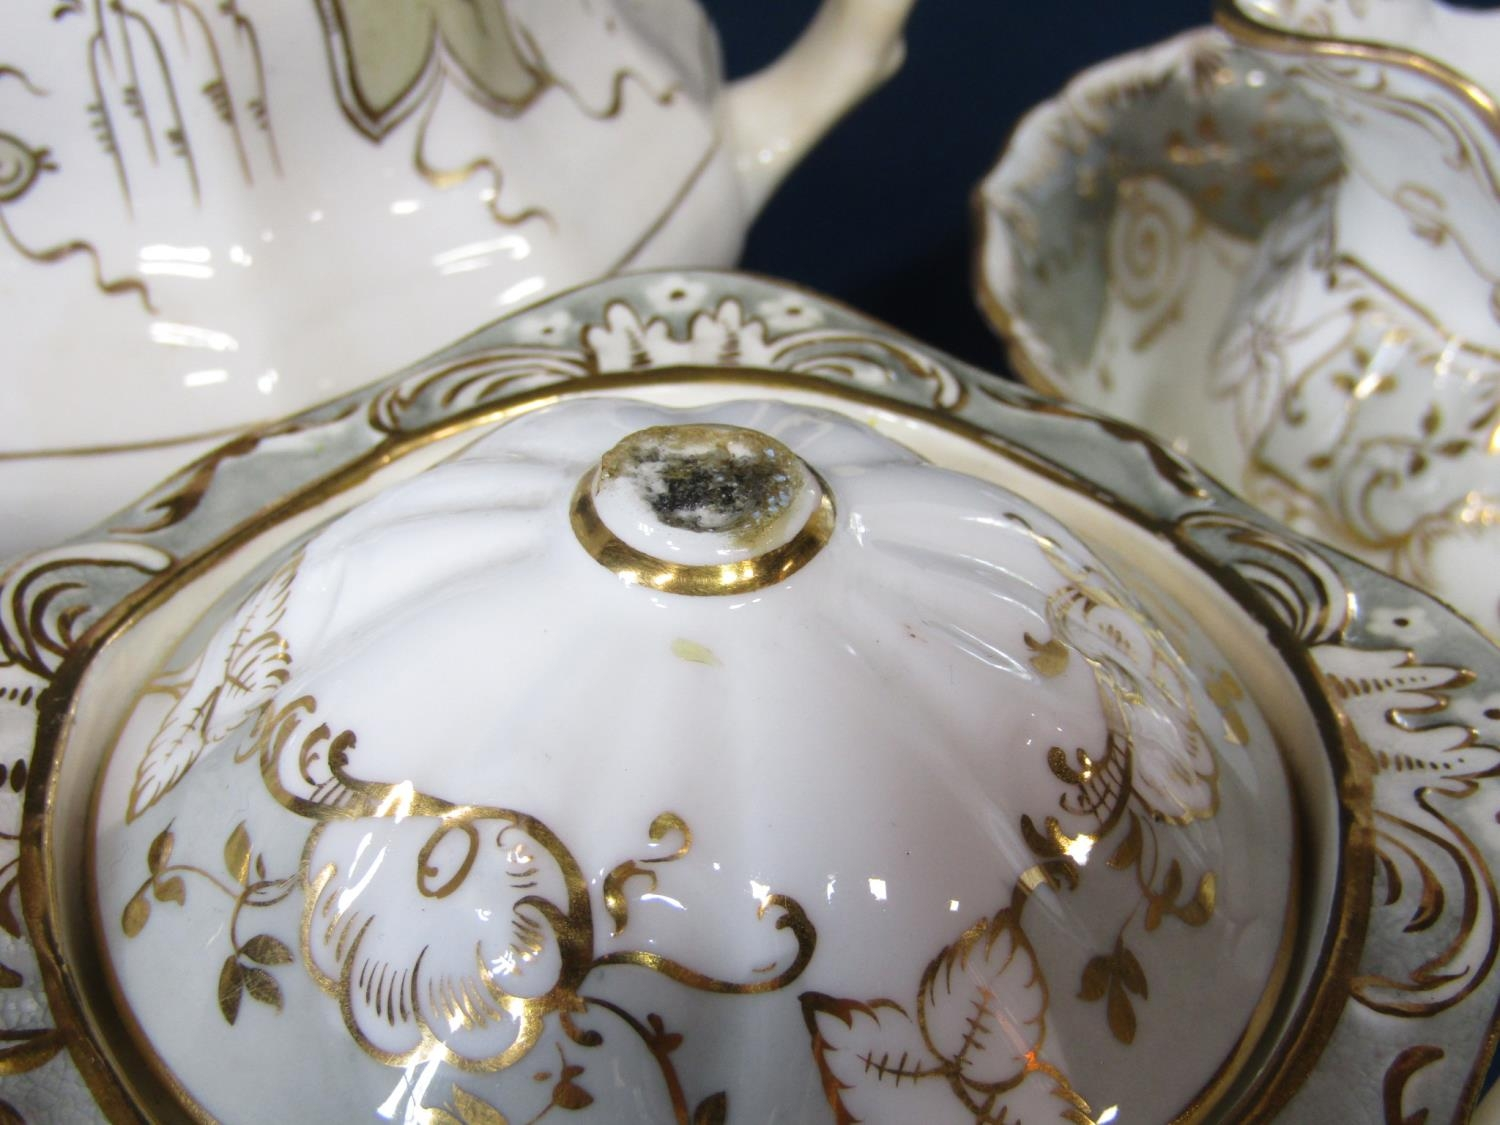 A quantity of Victorian tea wares with grey and gilt border decoration including a pair of covered - Bild 3 aus 3